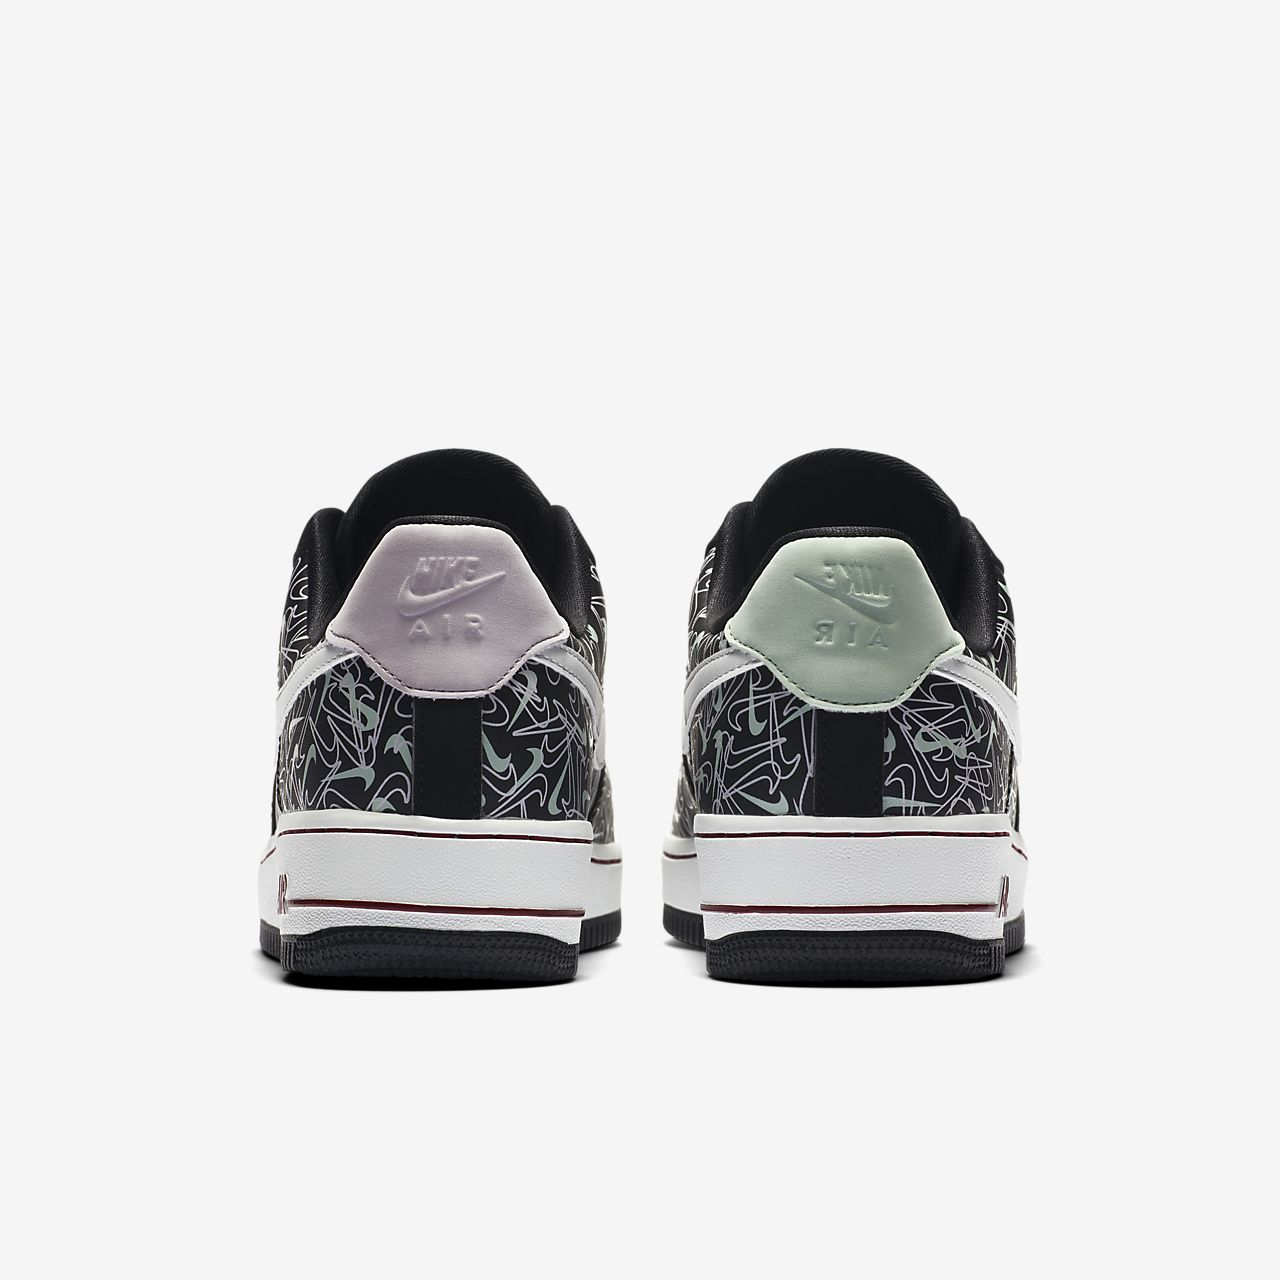 Nike Air Force 1 '07 Premium SE Women's Shoe